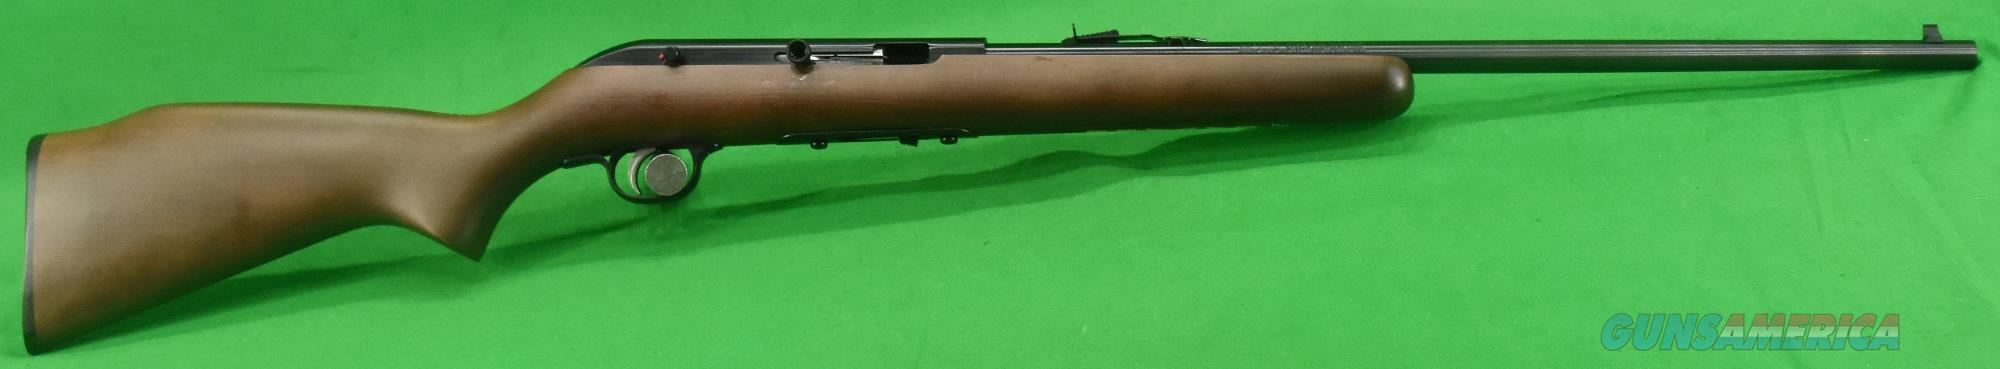 64 G Hardwood Blued 22 LR 21In 30000  Guns > Rifles > Savage Rifles > Standard Bolt Action